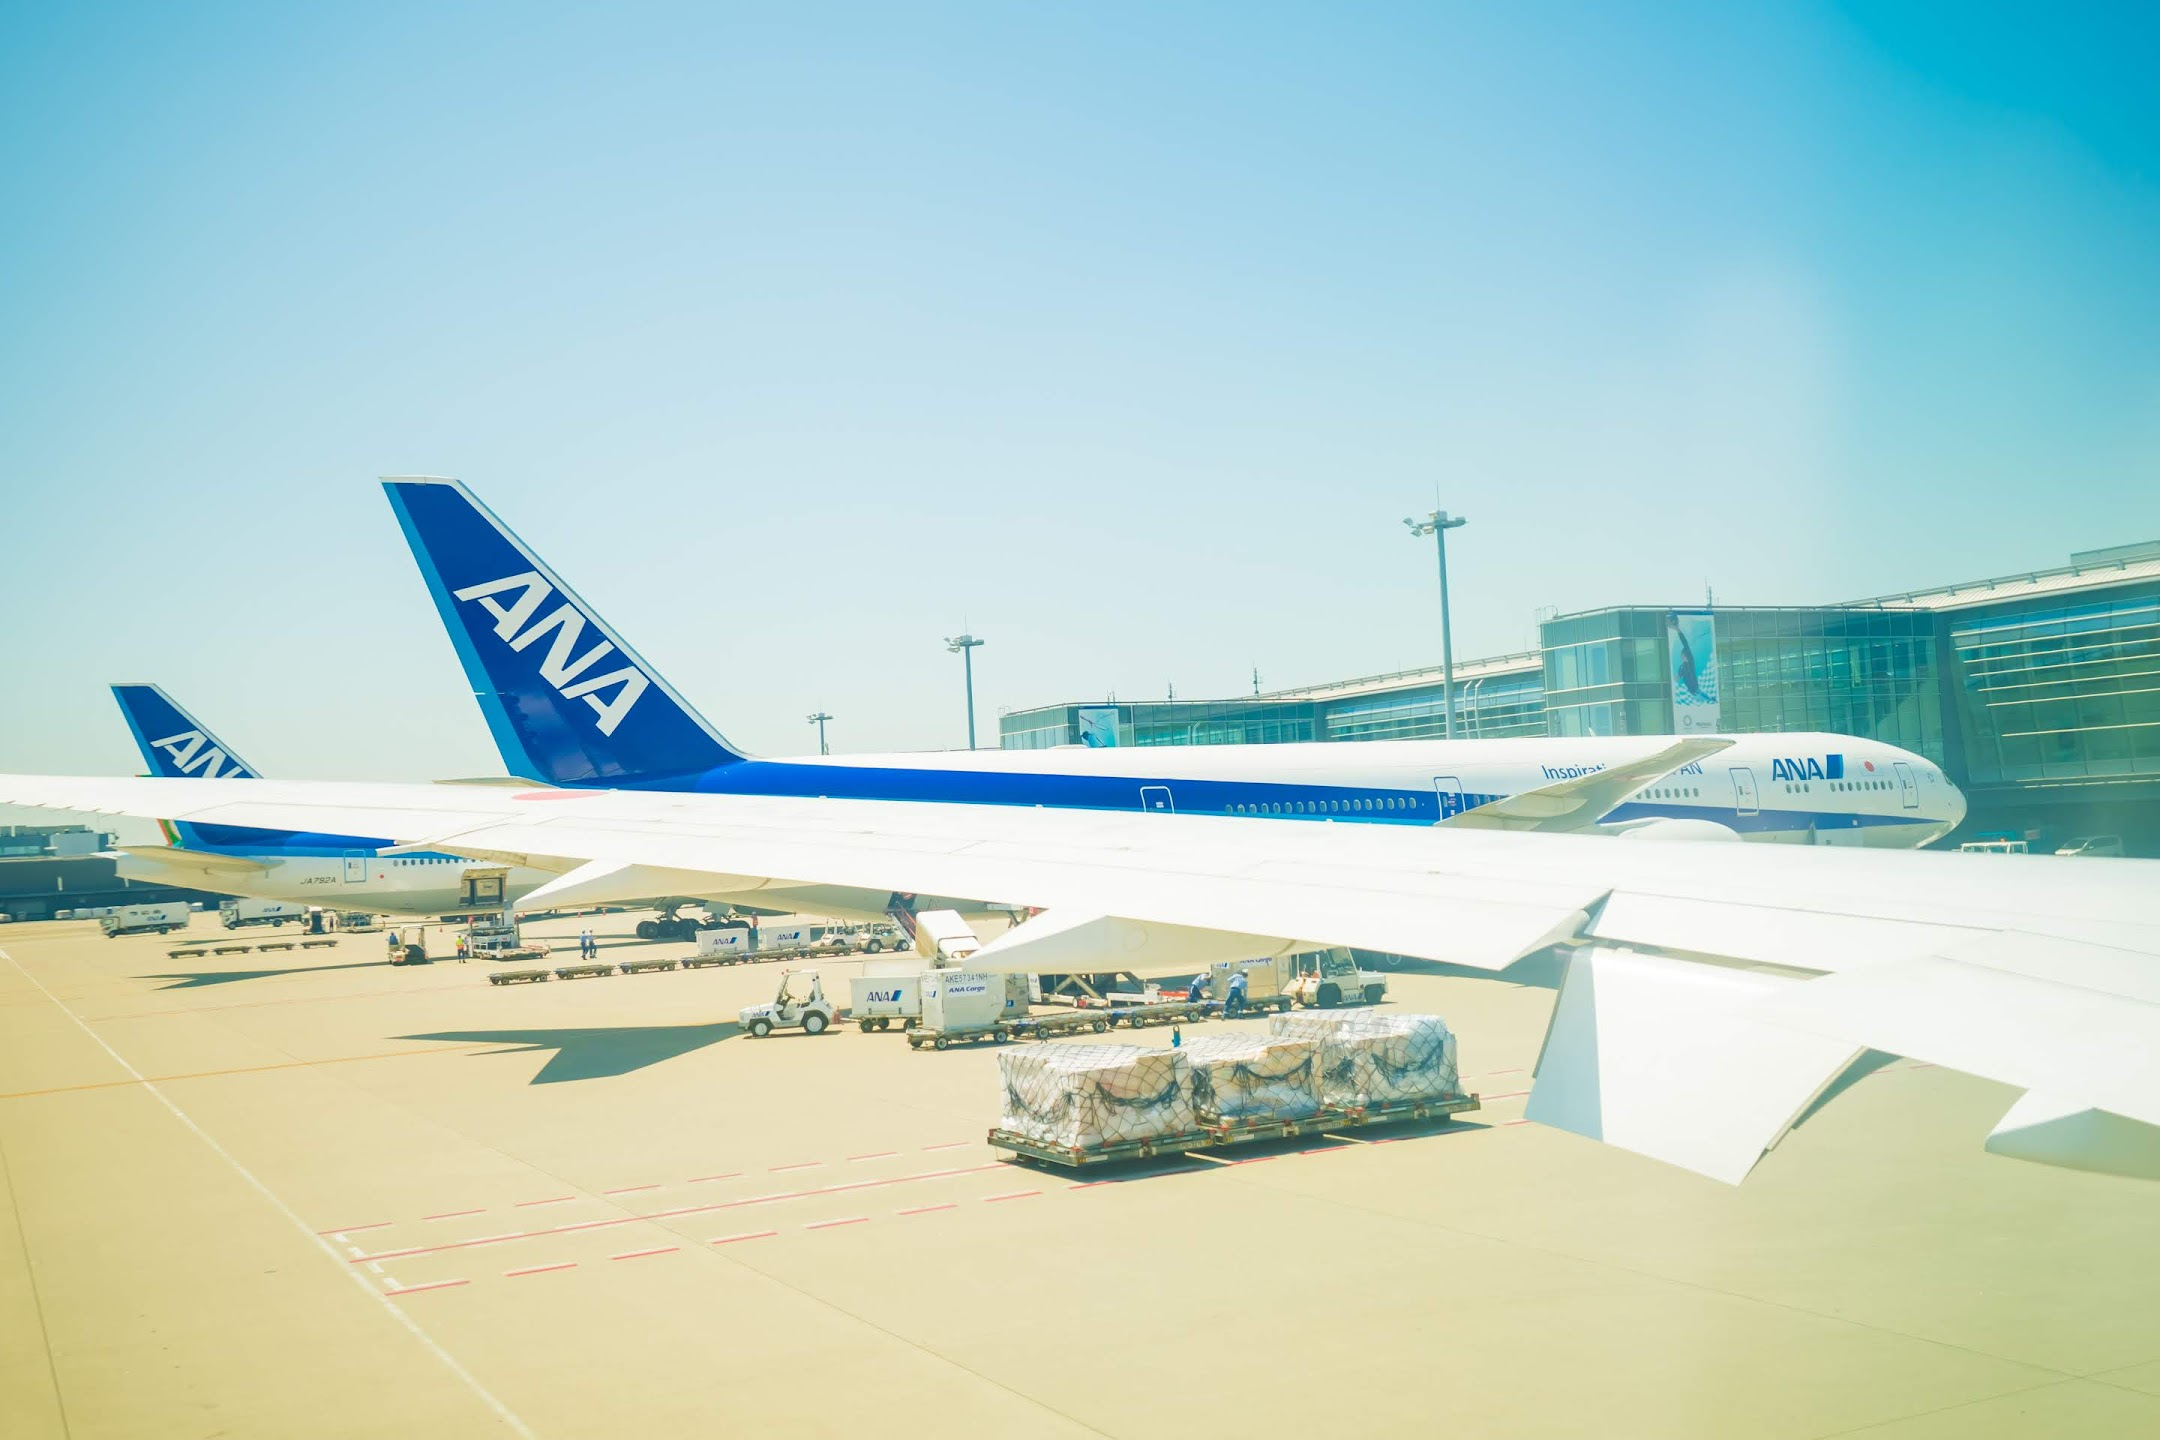 ANA Haneda International flight3